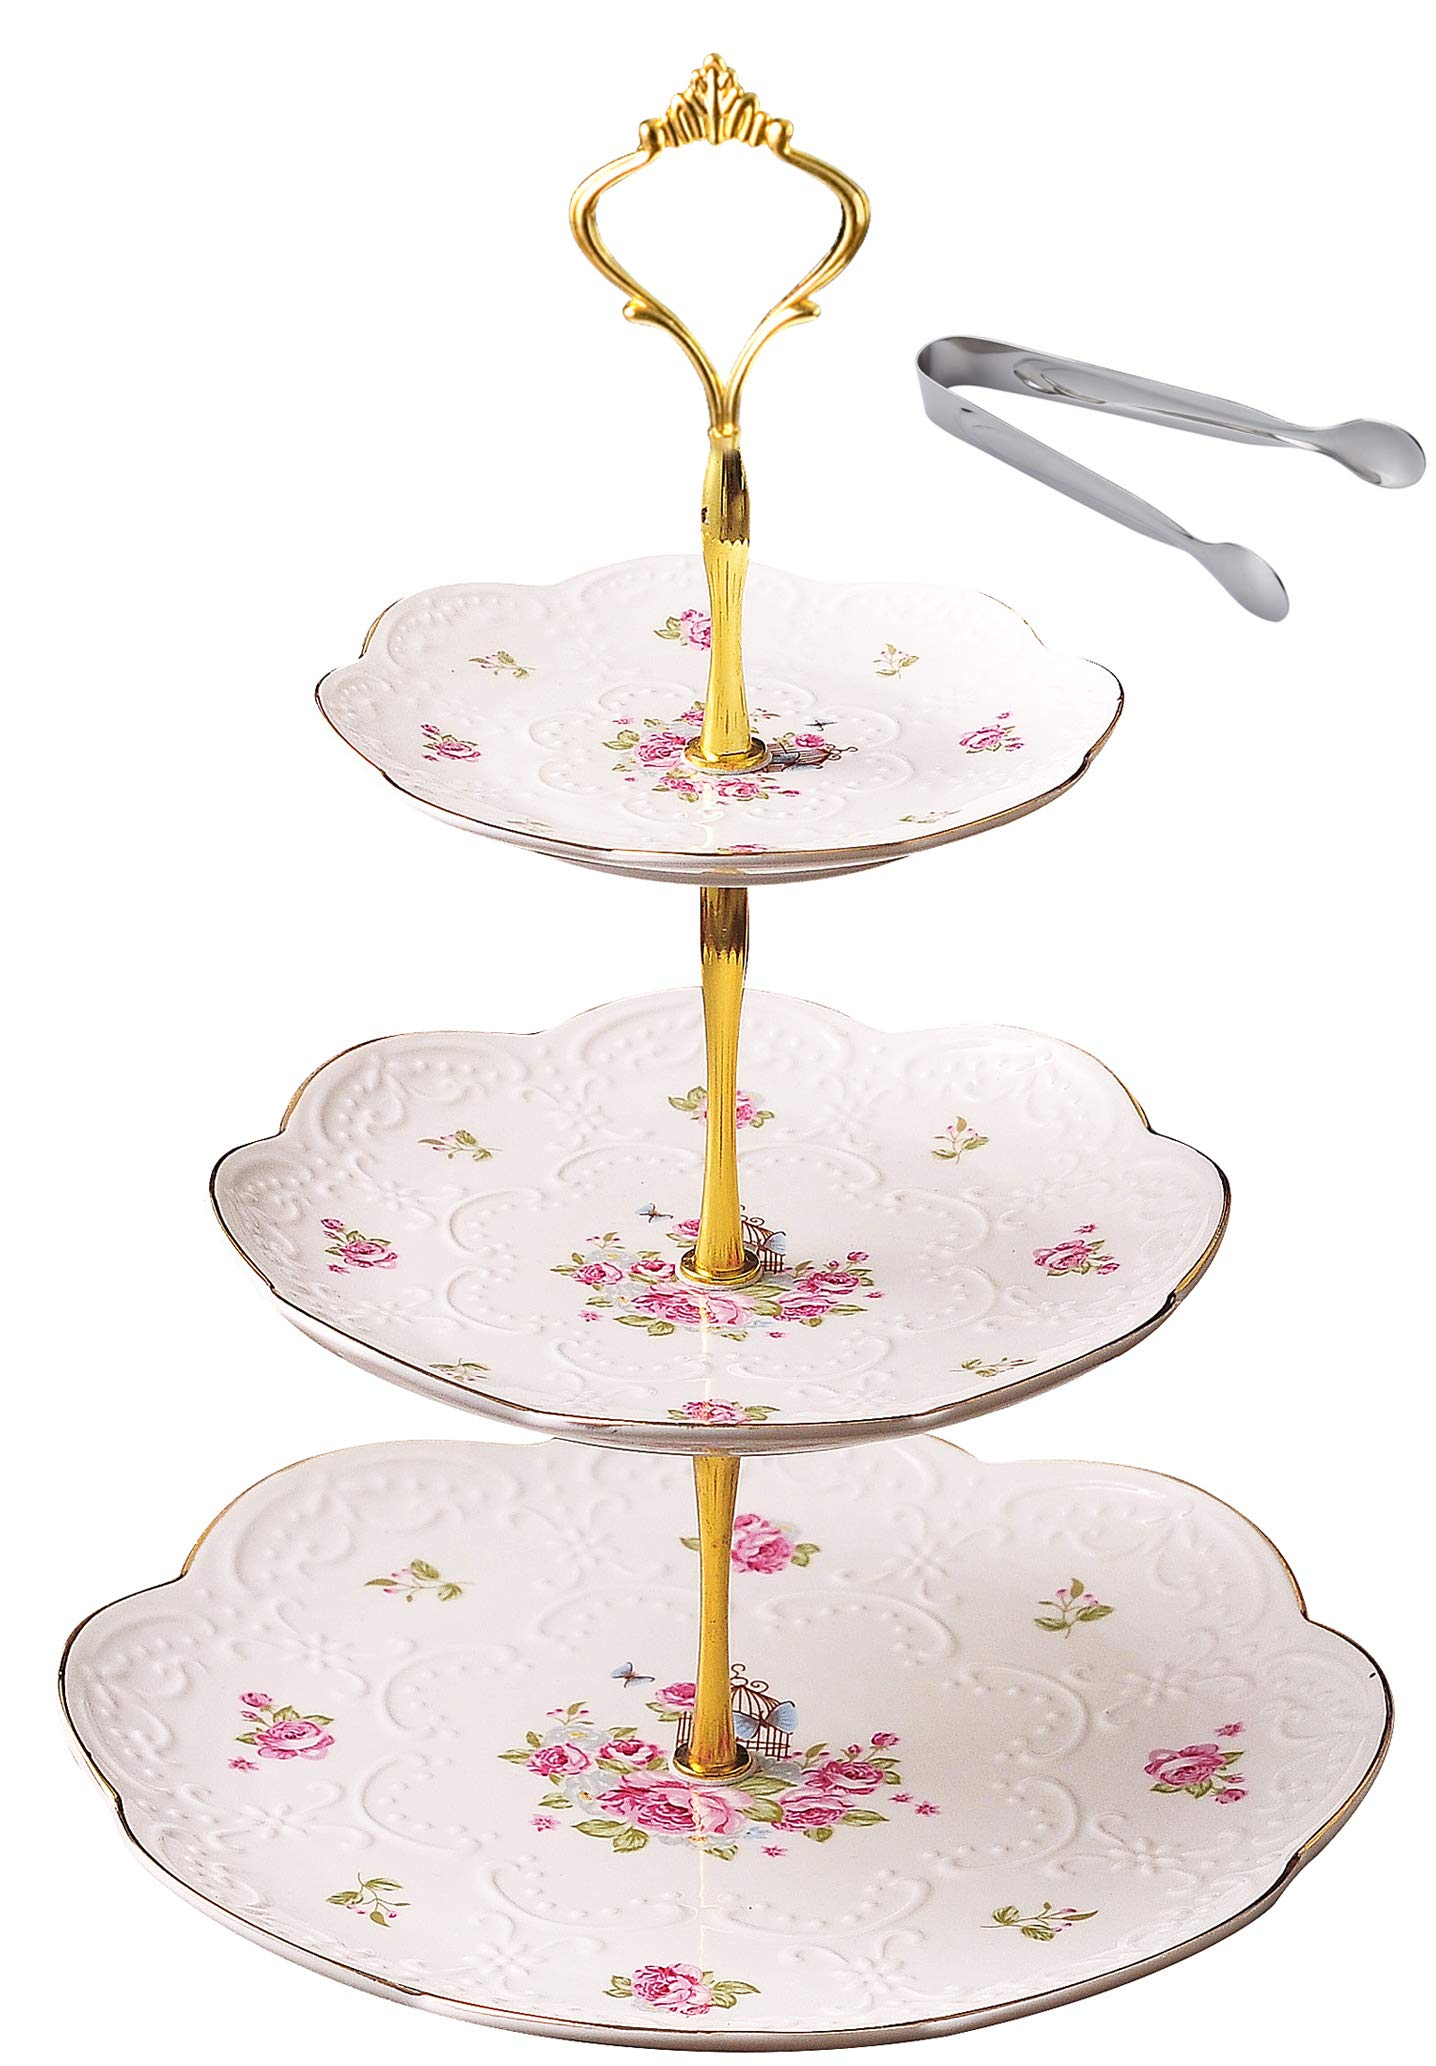 Jusalpha Elegant Embossed 3-tier Ceramic Cake Stand- Cupcake Stand- Tea Party Pastry Serving Platter in Gift Box and a Free Sugar Tong (FL-Stand 03) (3 Tier) by Jusalpha